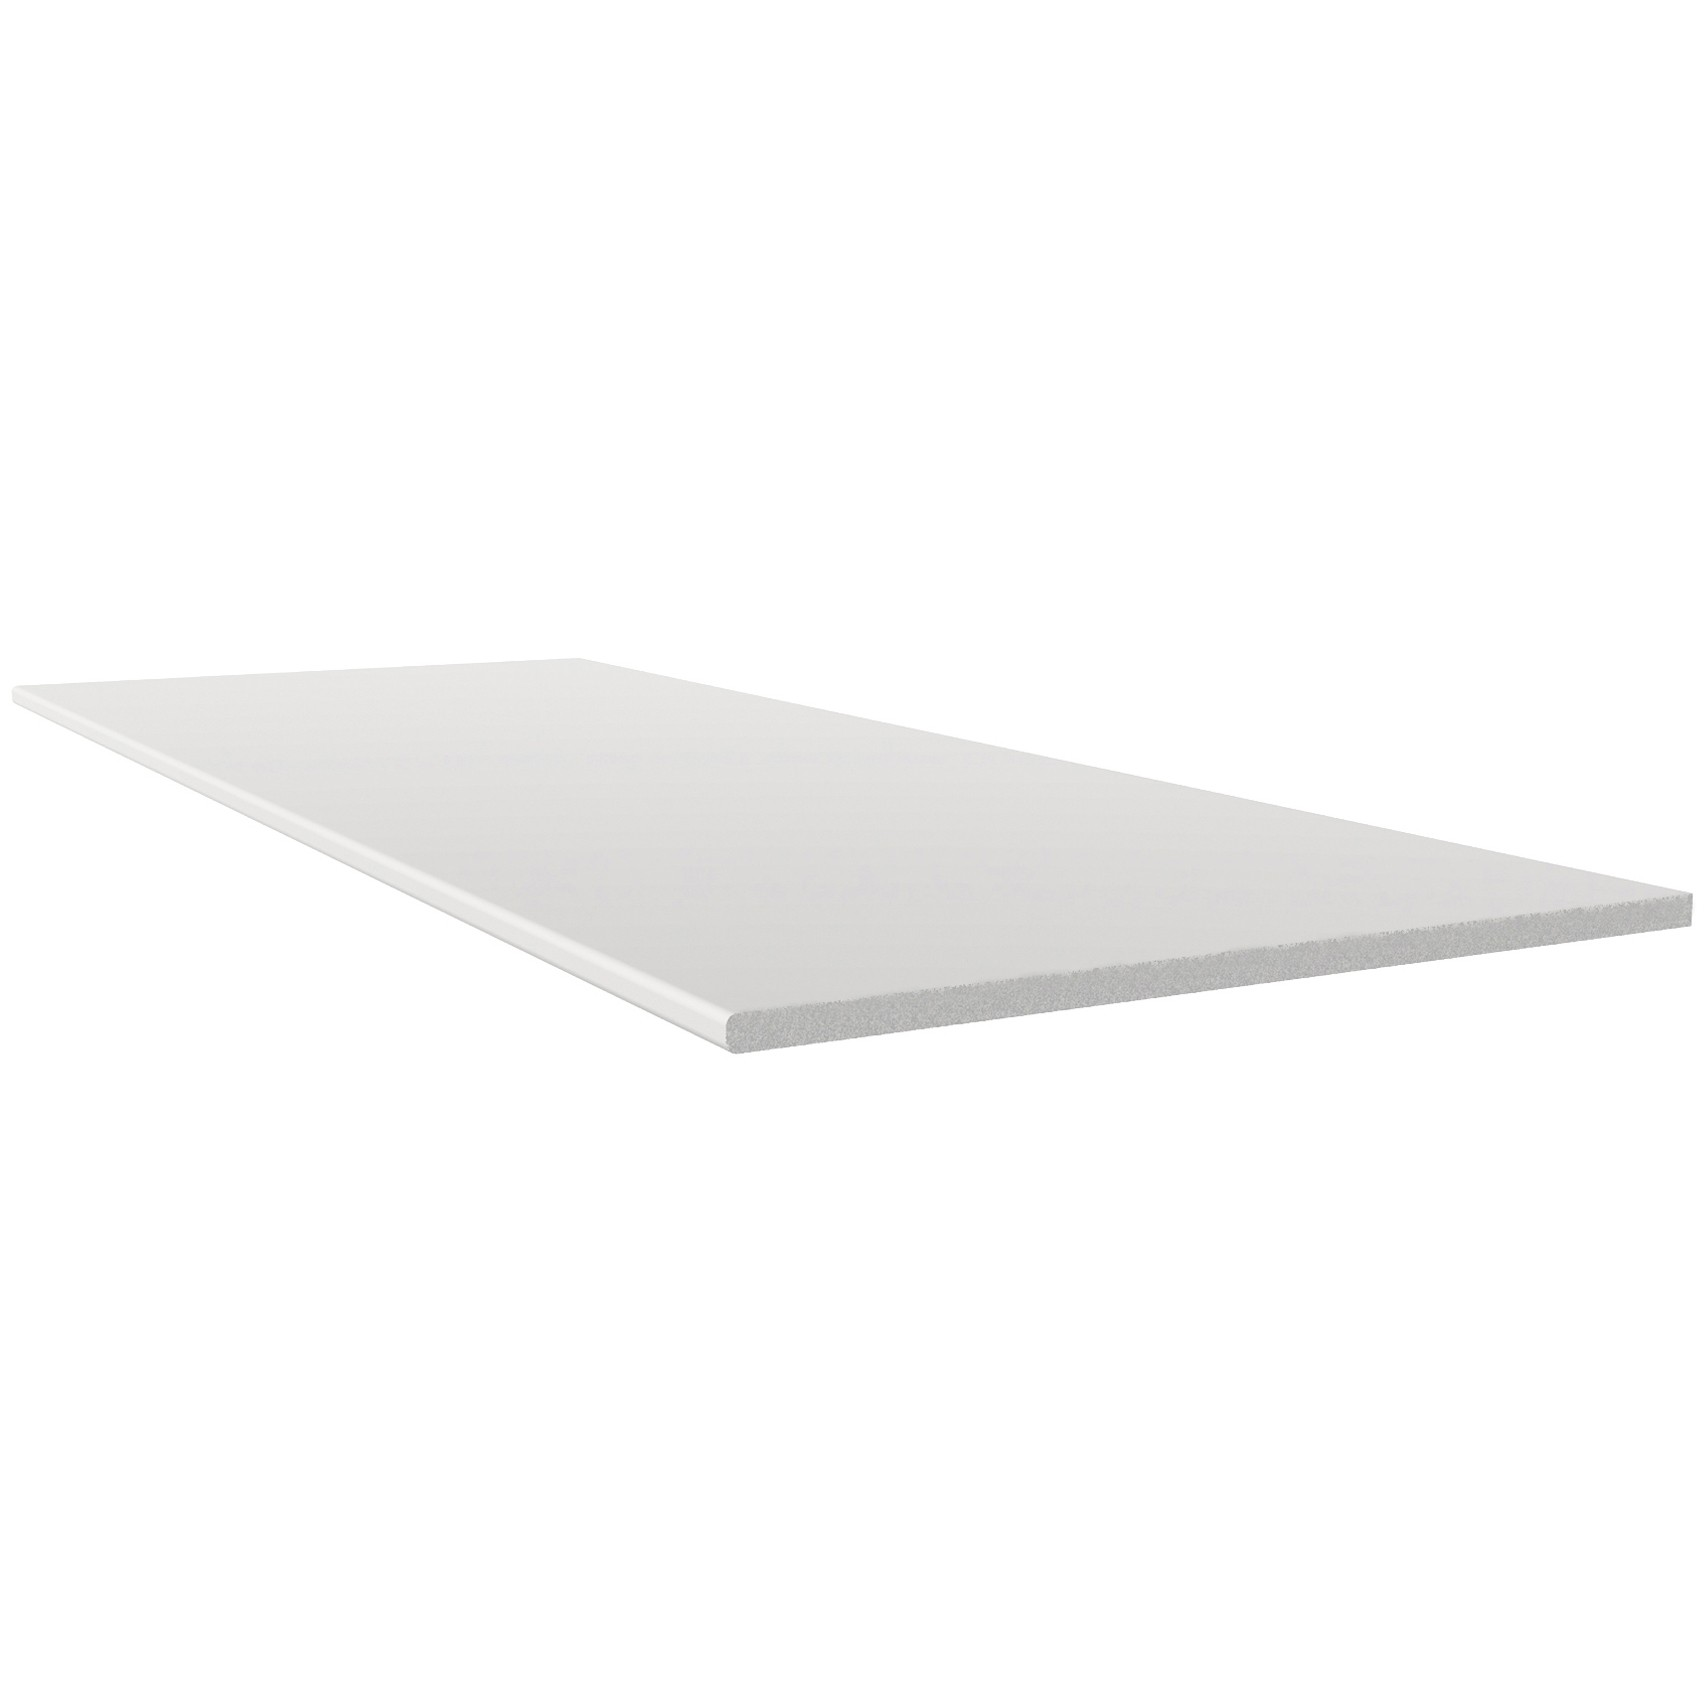 Freefoam 10mm Solid Soffit Board - White, 350mm, 2.5 metre